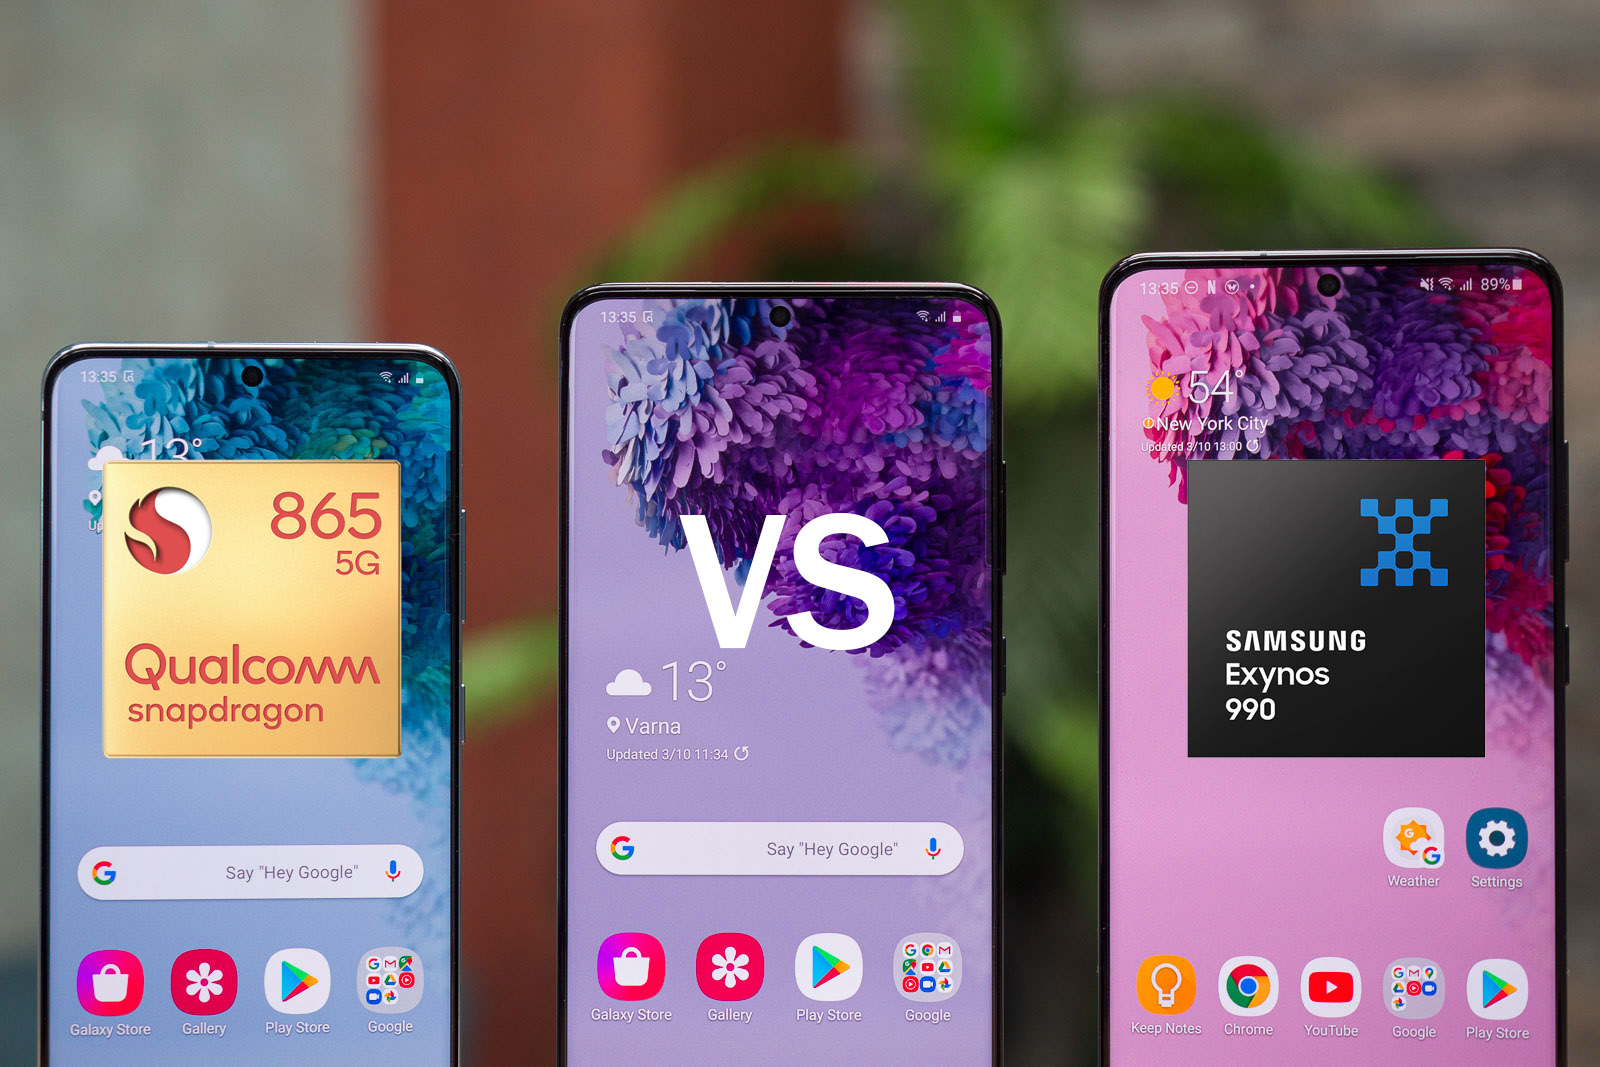 Galaxy S20 Exynos vs Snapdragon battery life and performance, or why Samsung fans are angry